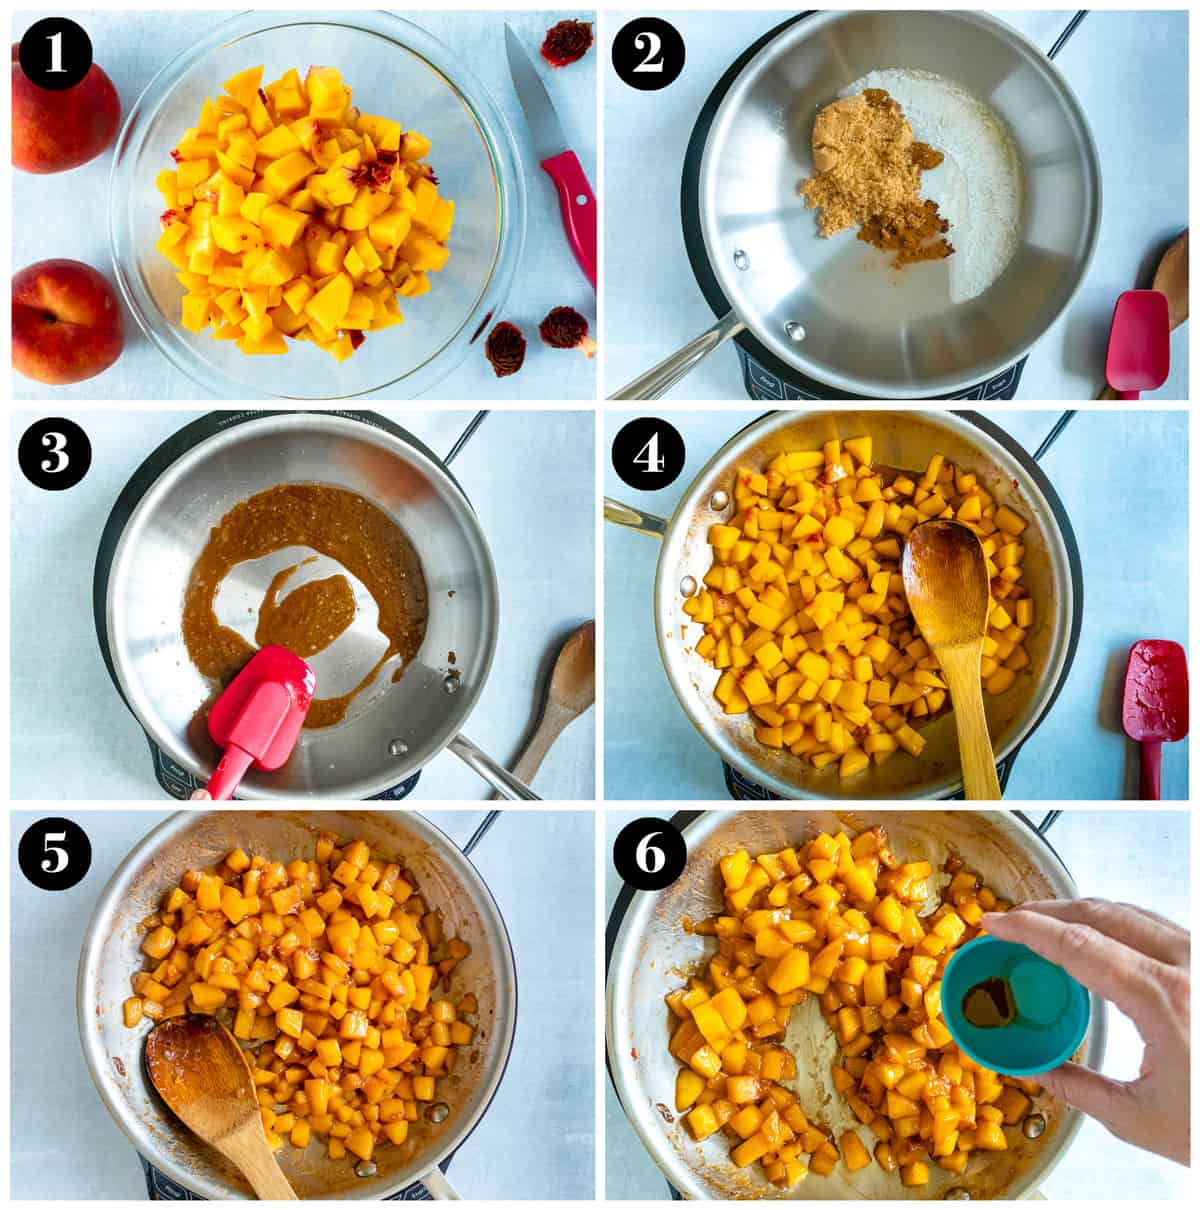 Step by step compote making process